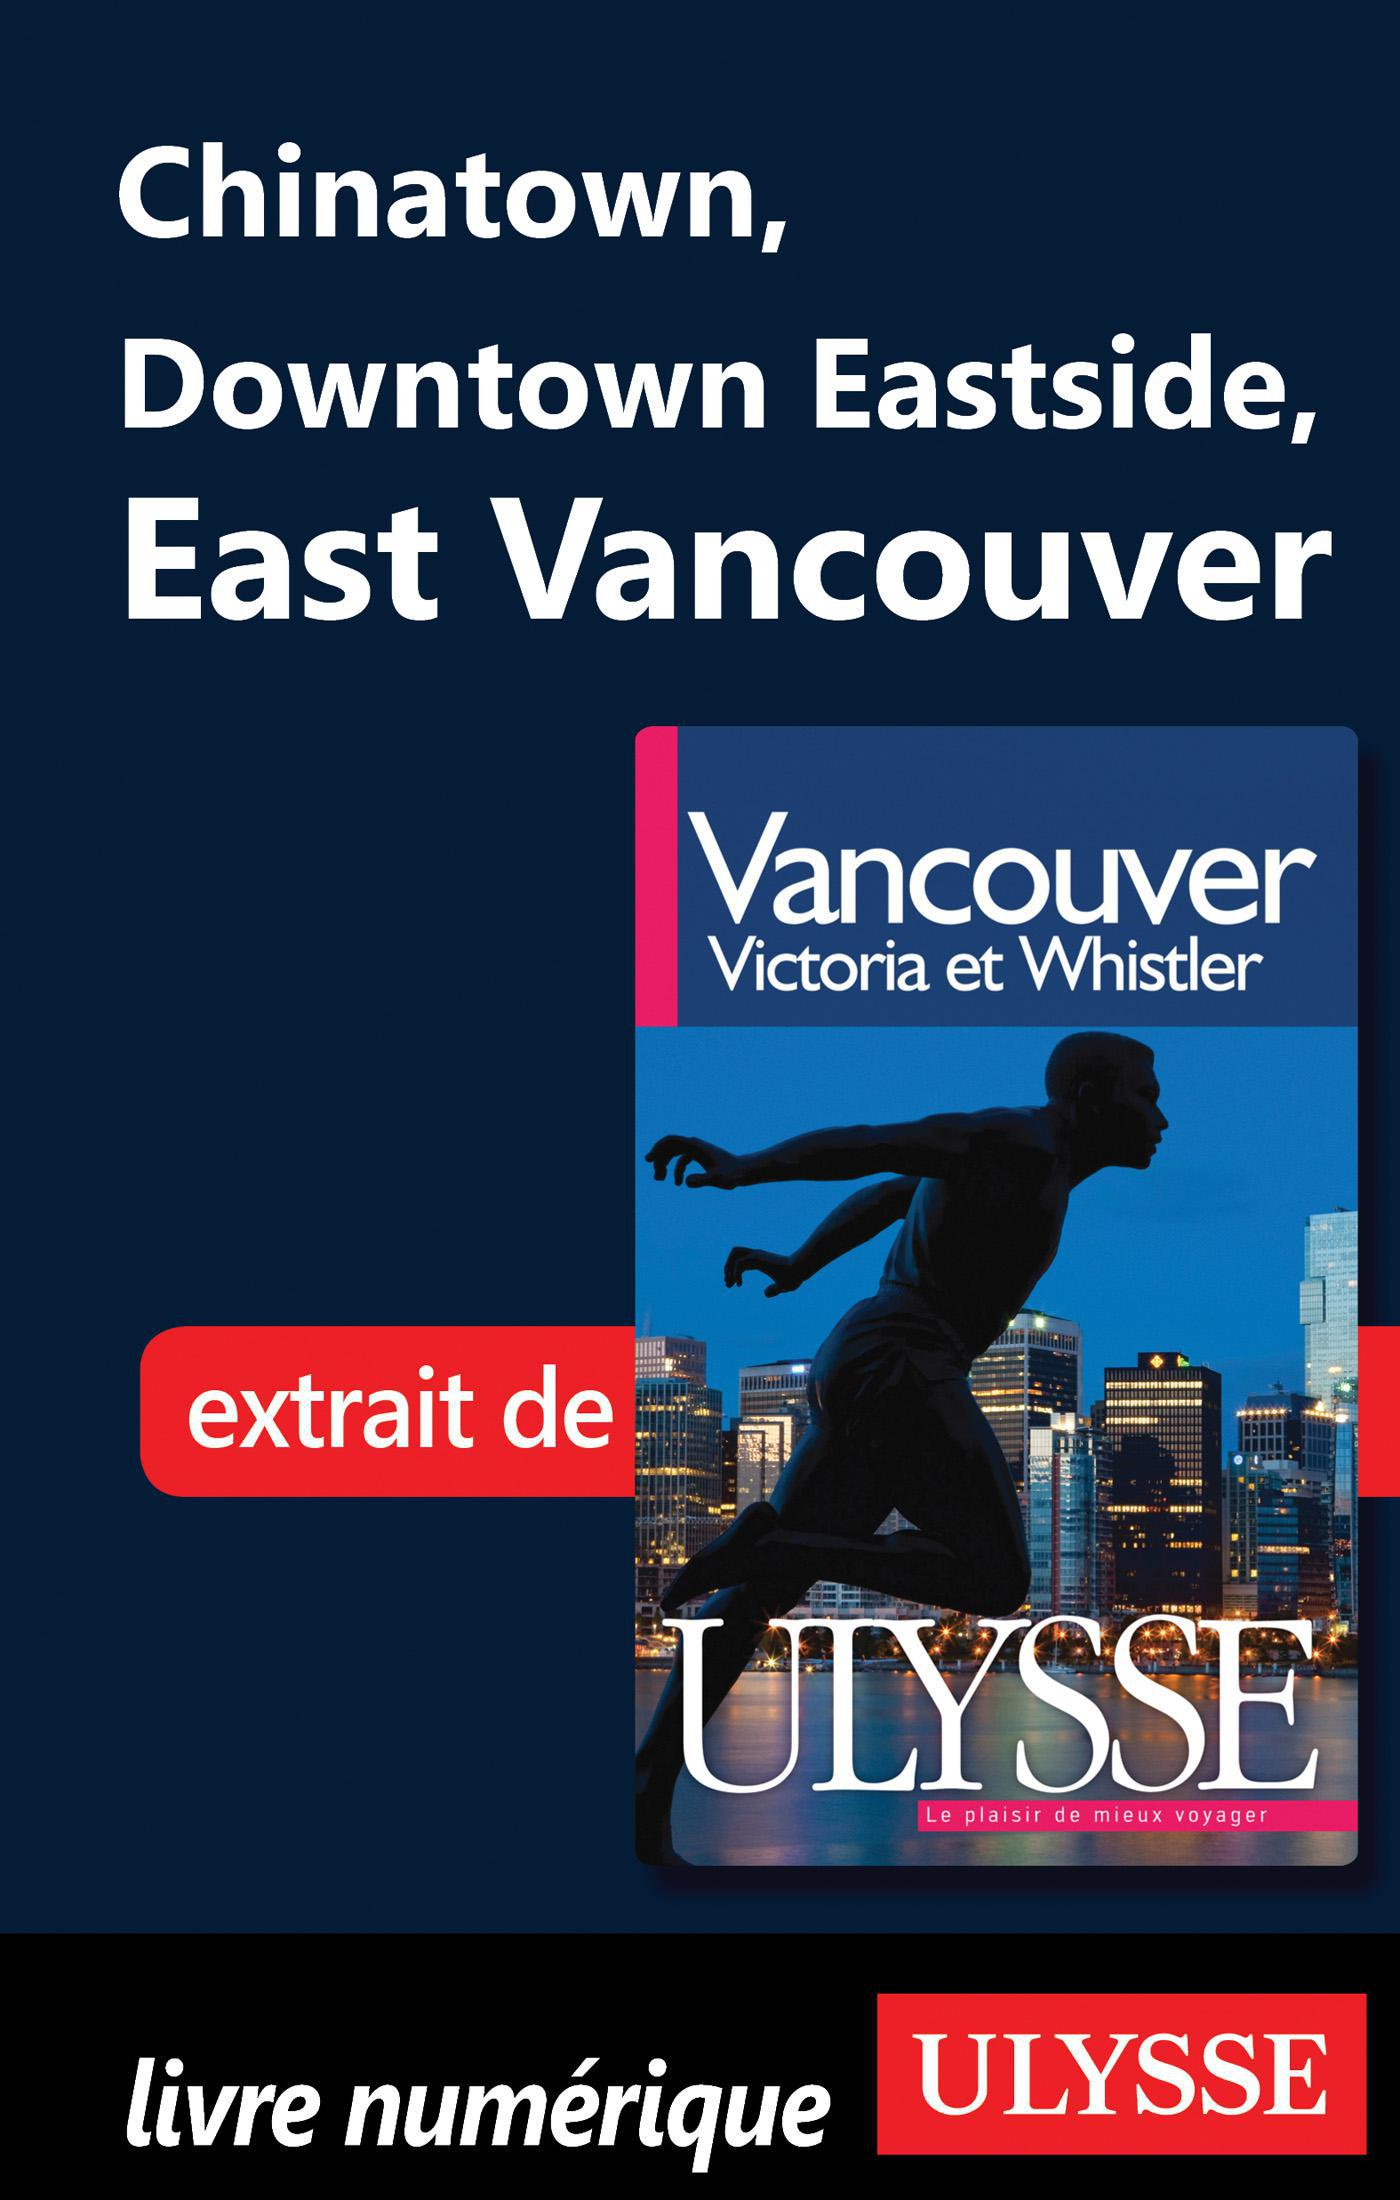 Chinatown, Downtown Eastside, East Vancouver